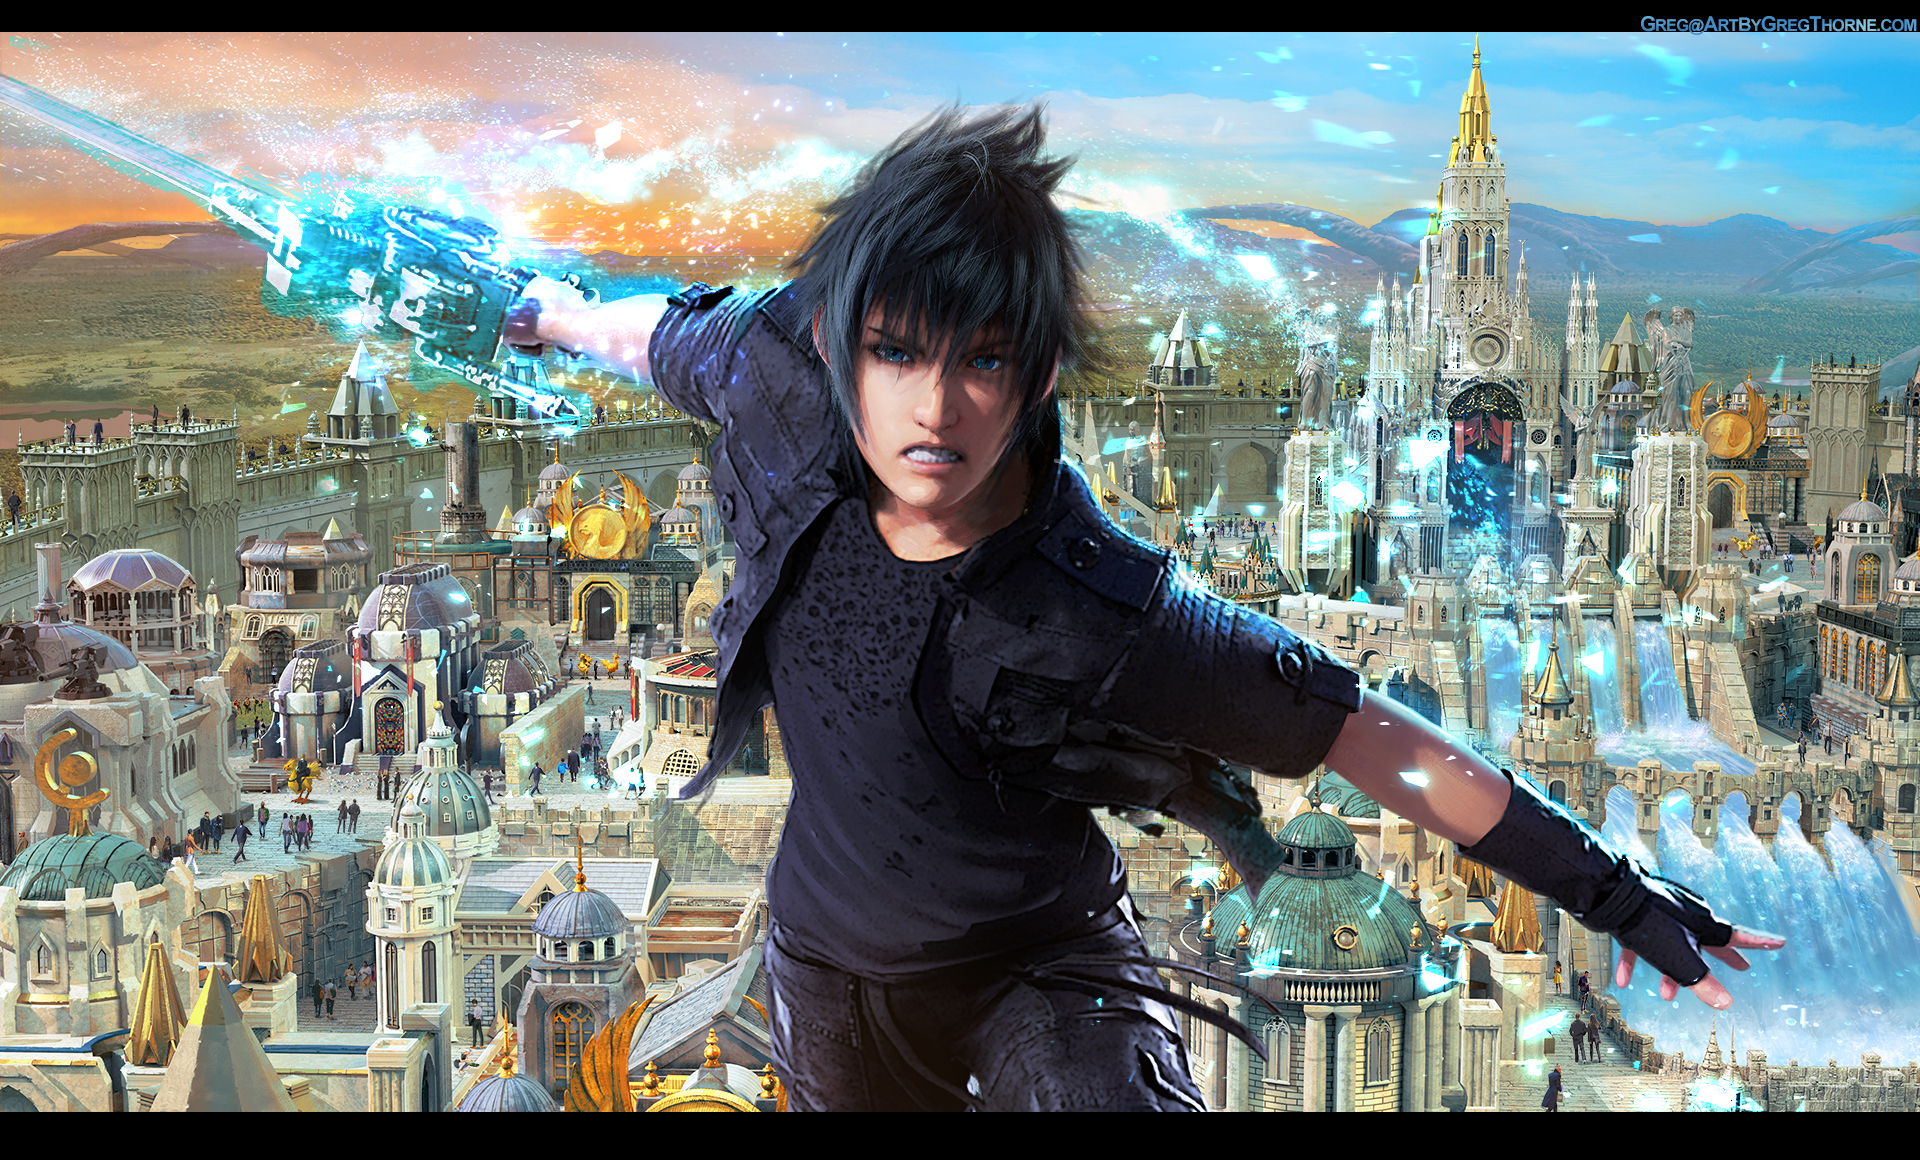 Noctis-Featured_by_GregThorne.jpg